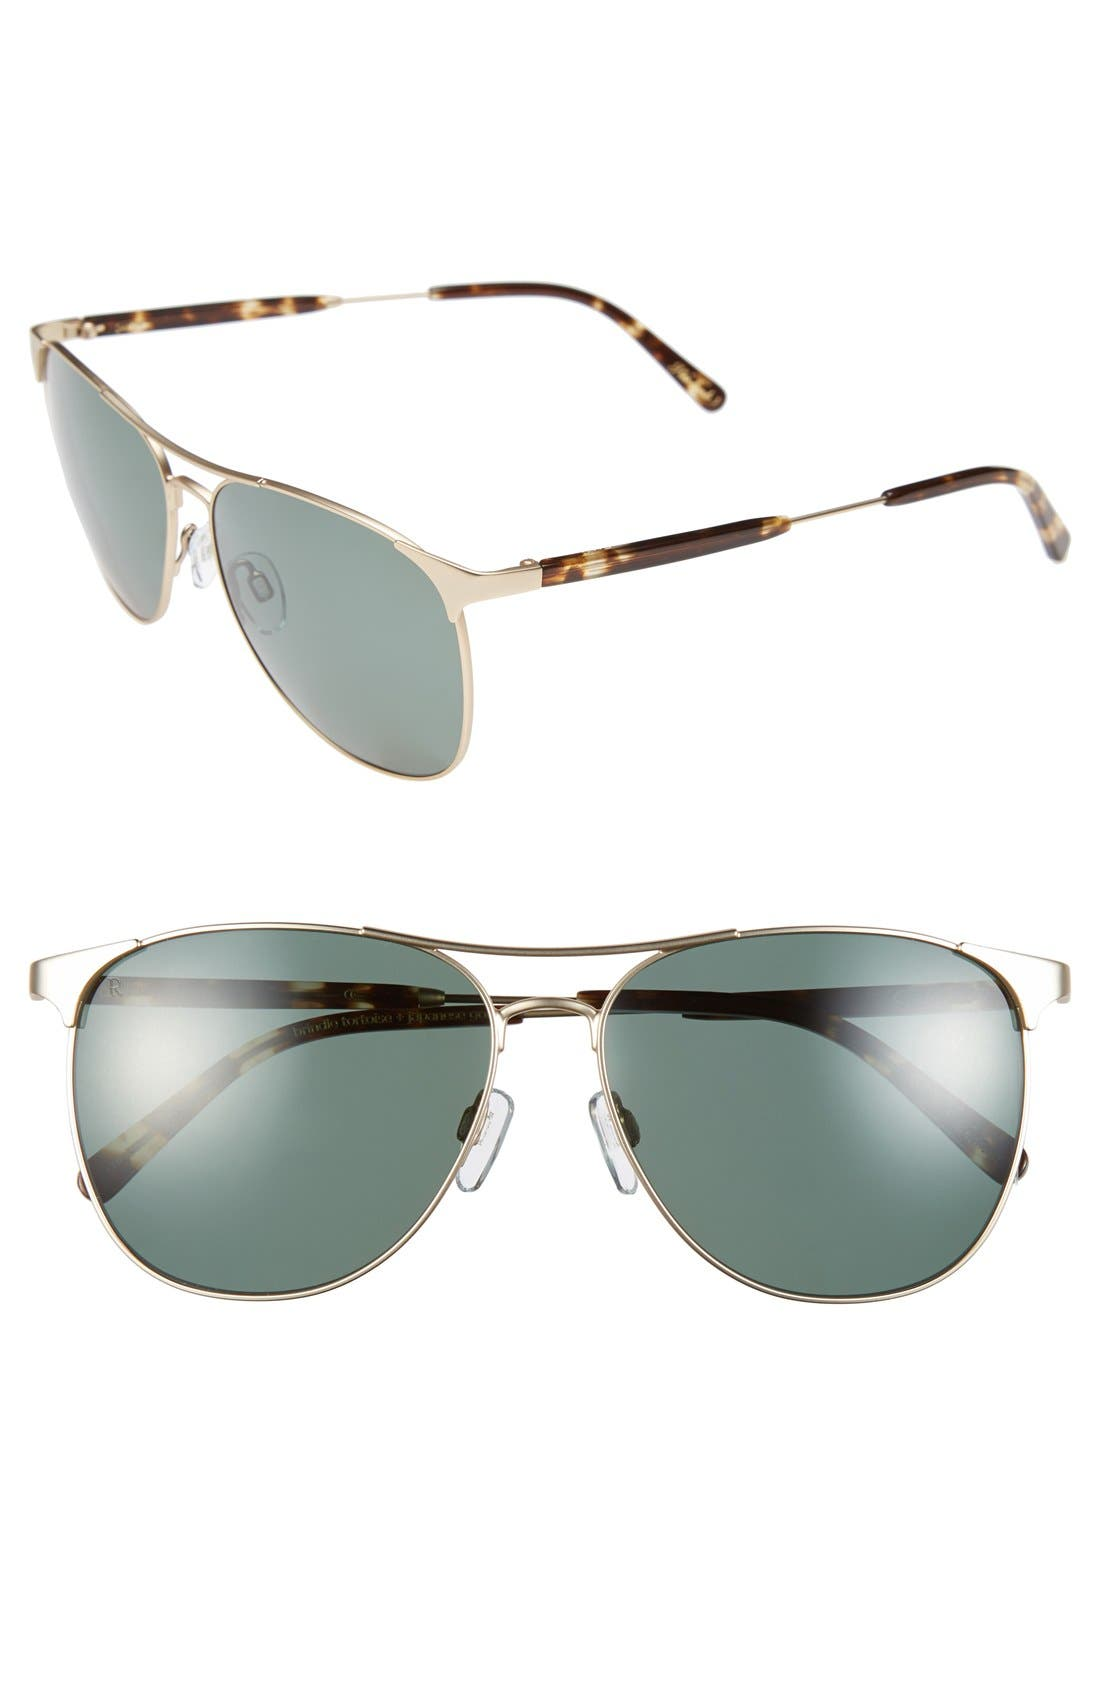 Main Image - RAEN 'Castor' 58mm Sunglasses